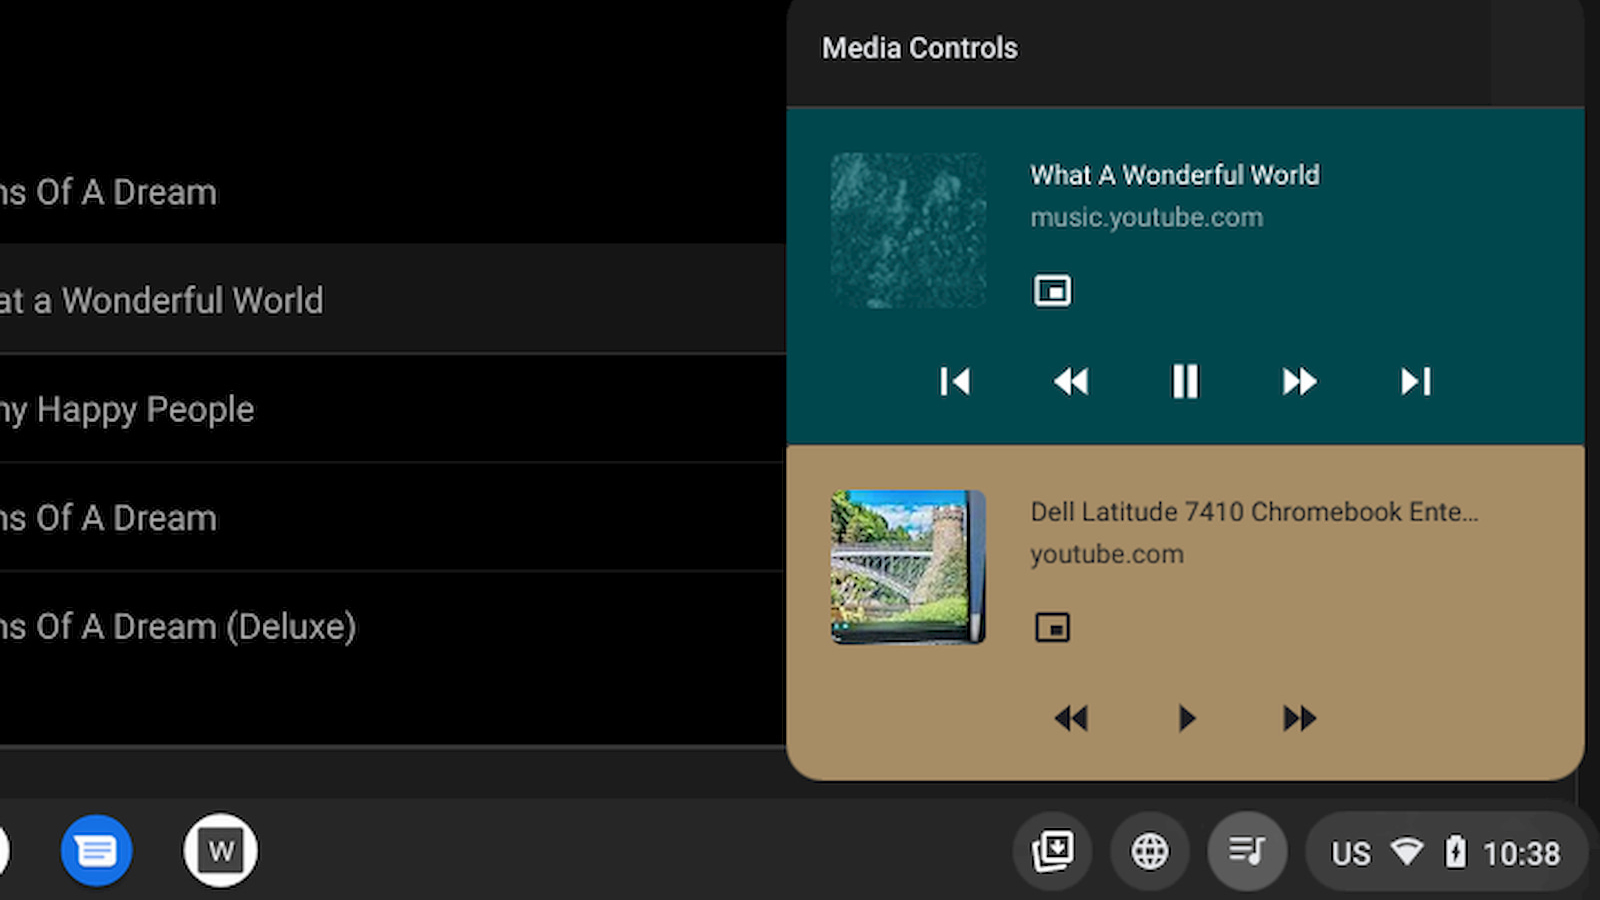 Chrome OS Global Media Controls arrive in the Canary Channel